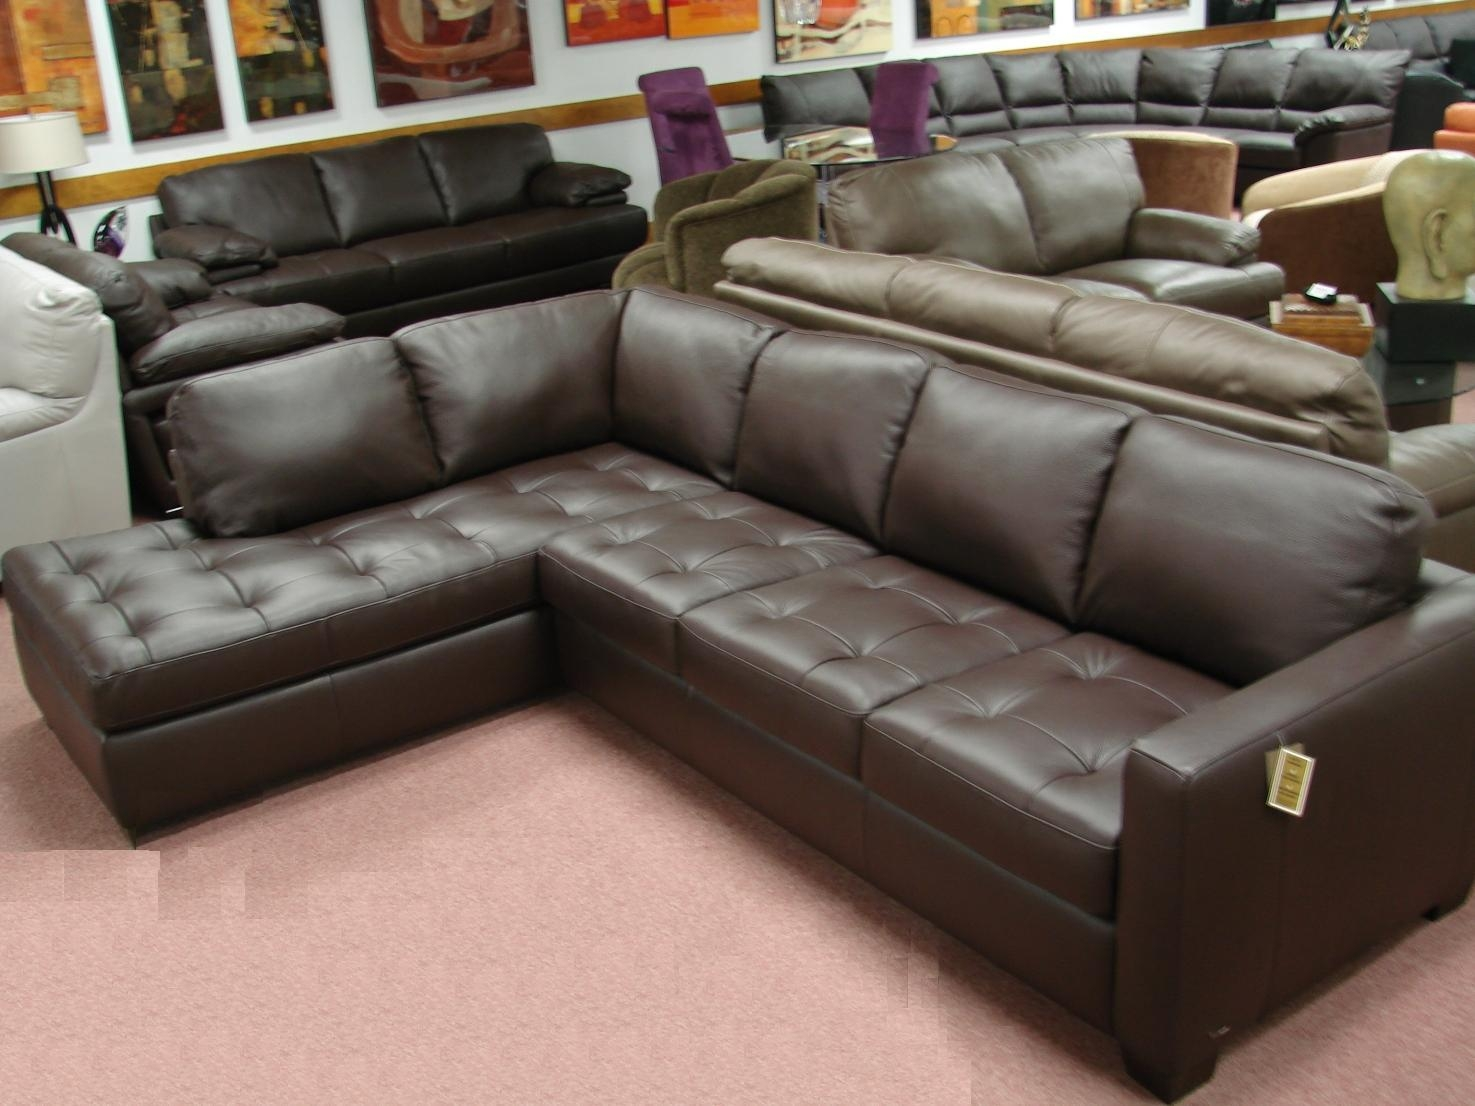 Sofa & Couch: Sectional Couches For Sale To Fit Your Living Room For Leather Sofa Sectionals For Sale (View 9 of 20)